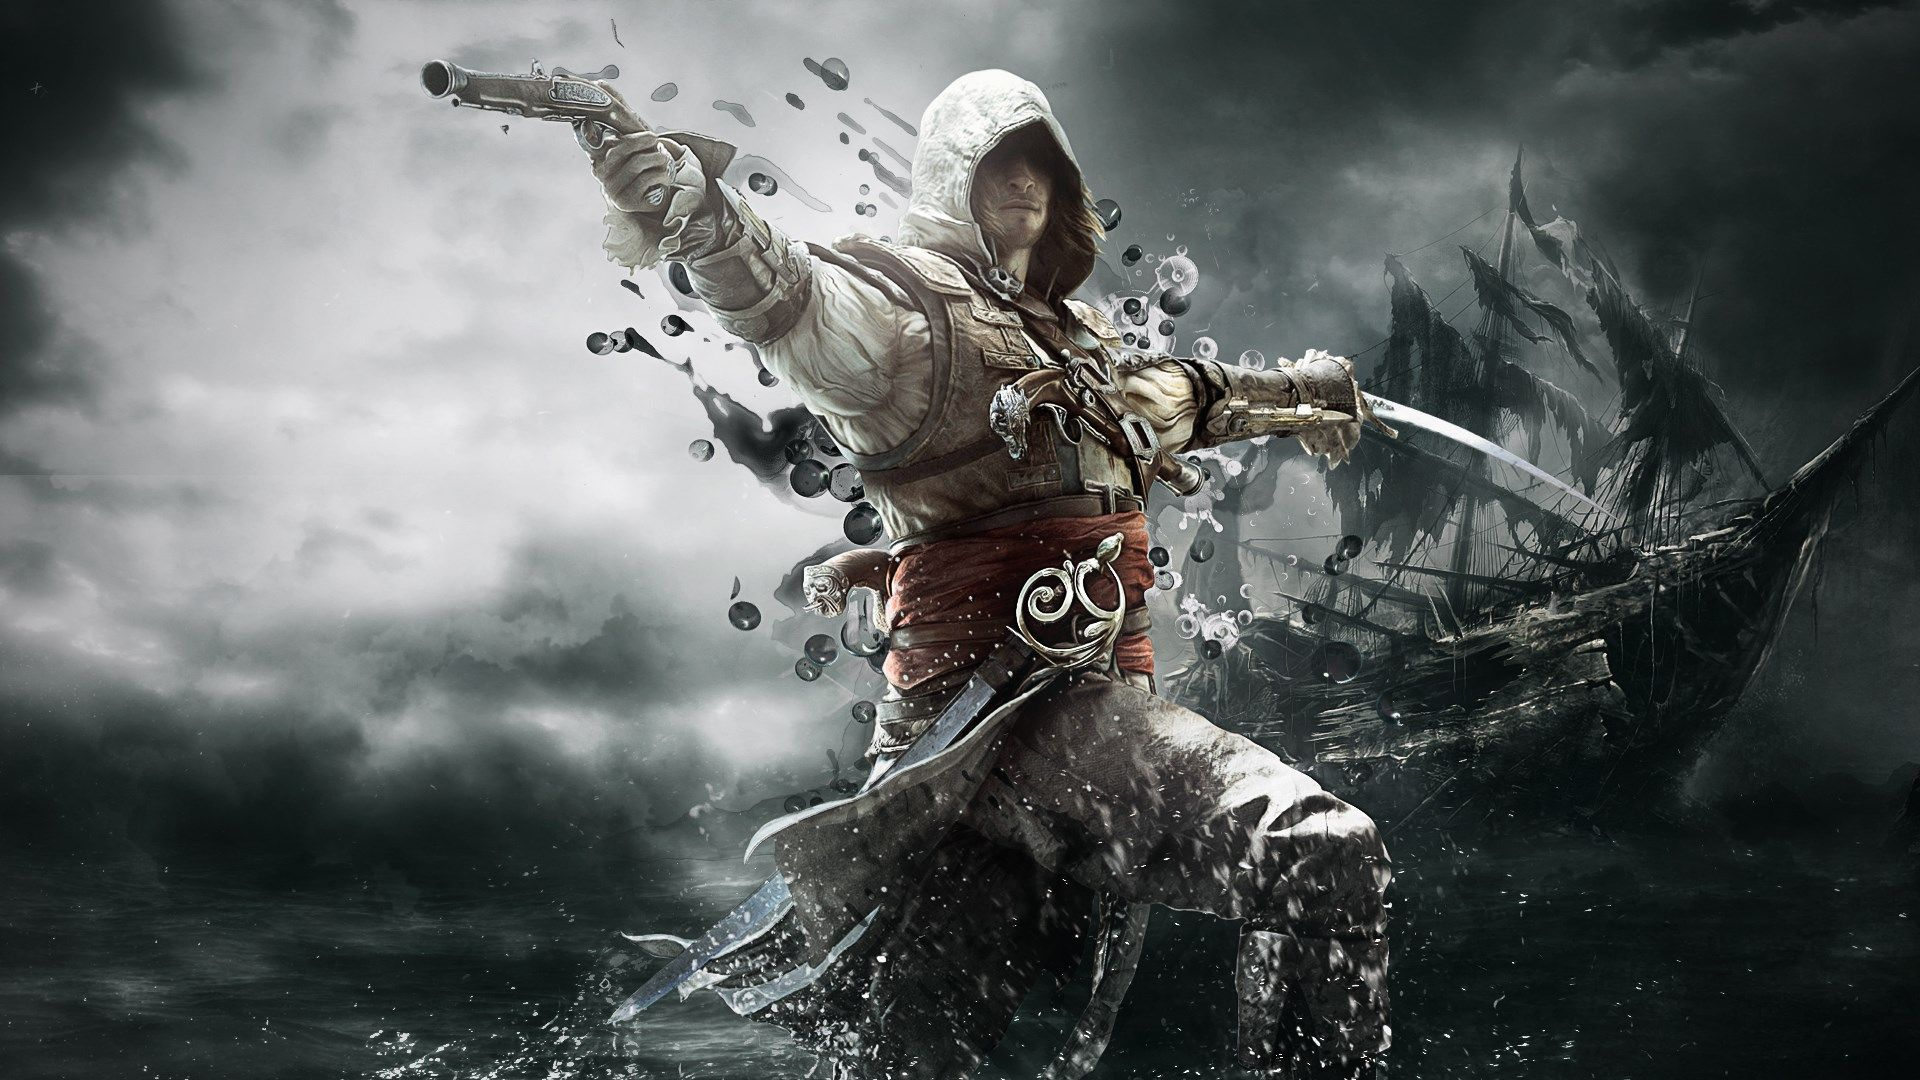 Assassins Creed 4 Black Flag Image Gallery Wallpaper Hd Best Game In The World 2013 2014 Arte Assassins Creed Assassinas Assassins Creed